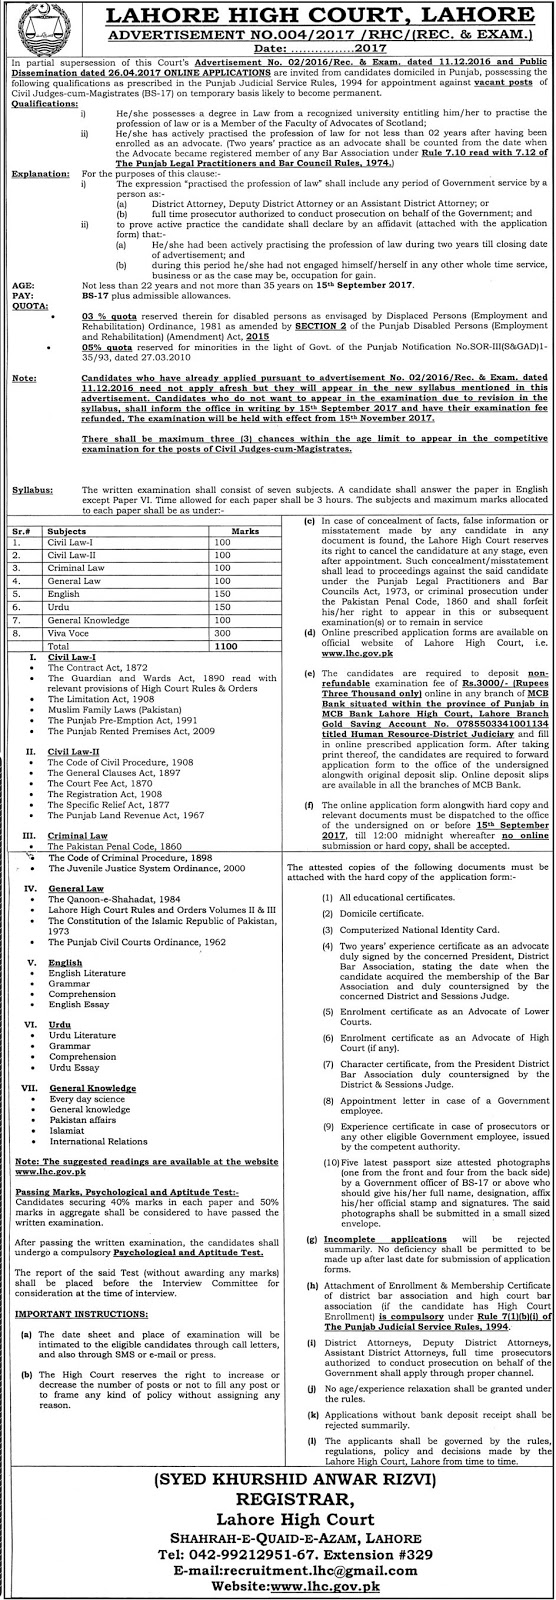 Bps-17 Job in Lahore High Court Punjab 19 July 2017.